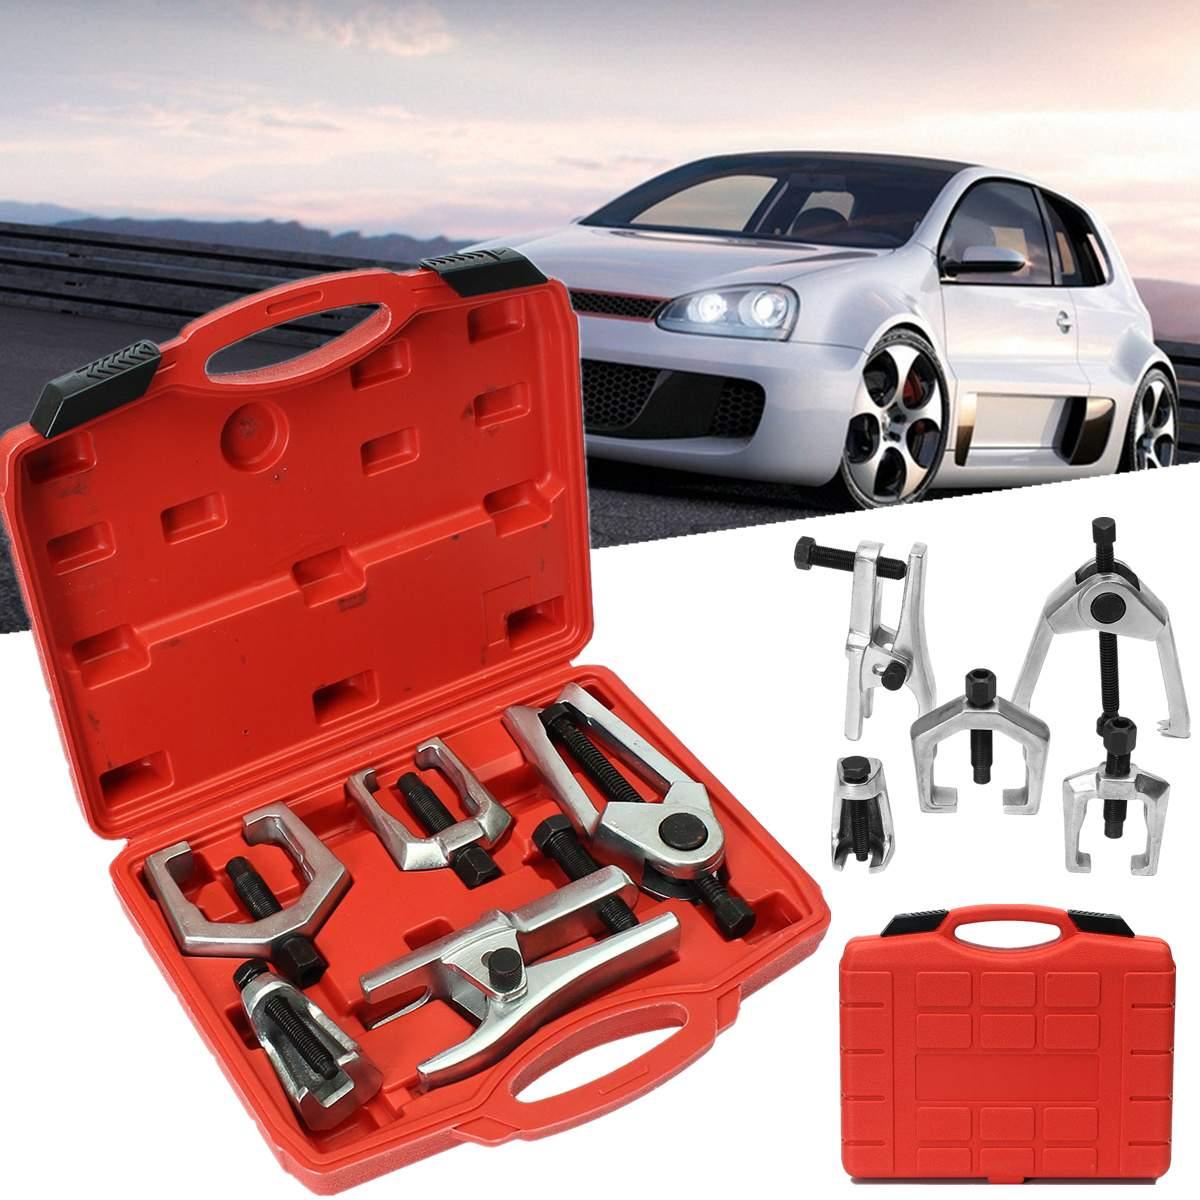 цена на Front End Service Tool Kit 5 in 1 Removers Press Type Ball Joint Tie Rod Pitman Arm Puller Ball Joint Separator Car Repair Tools